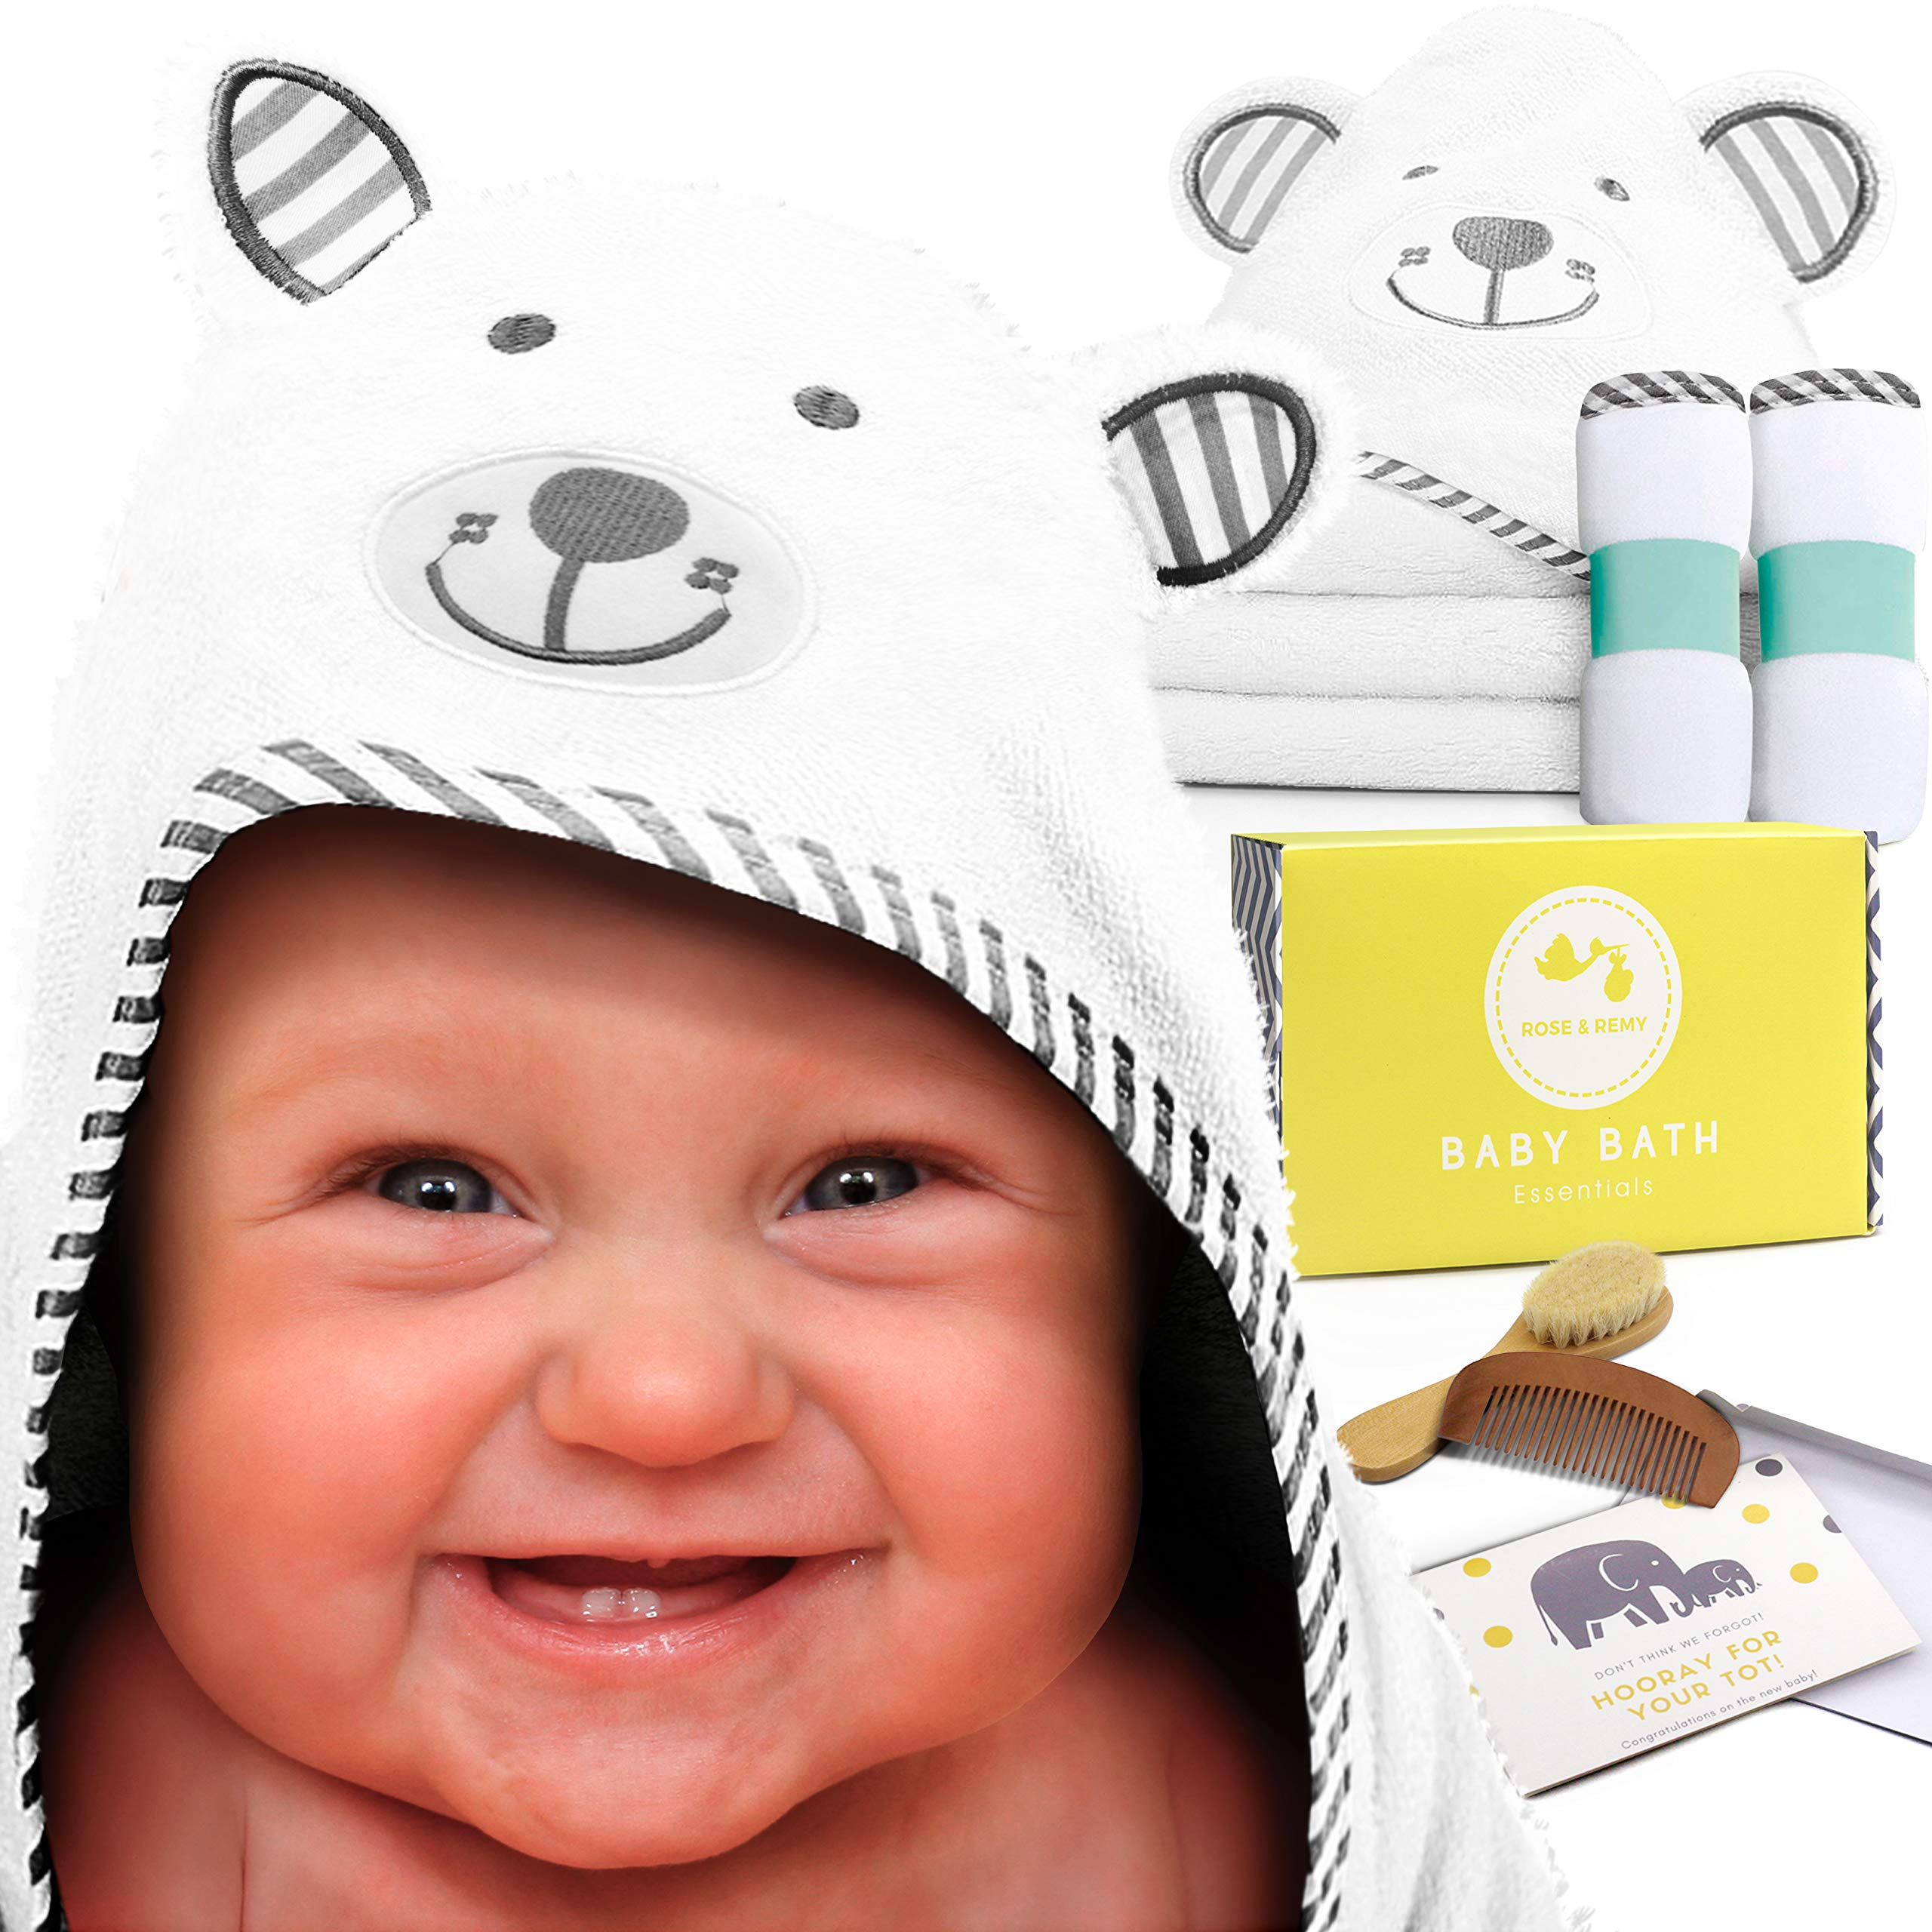 Baby Bath Essentials by Rose & Remy - Bamboo Hooded Towel & Washcloth Gift Set - Unique Baby Shower Registry Present for Newborn Boys or Girls! Bonus Wooden Baby Brush & Comb Included! by Maven Supply Co